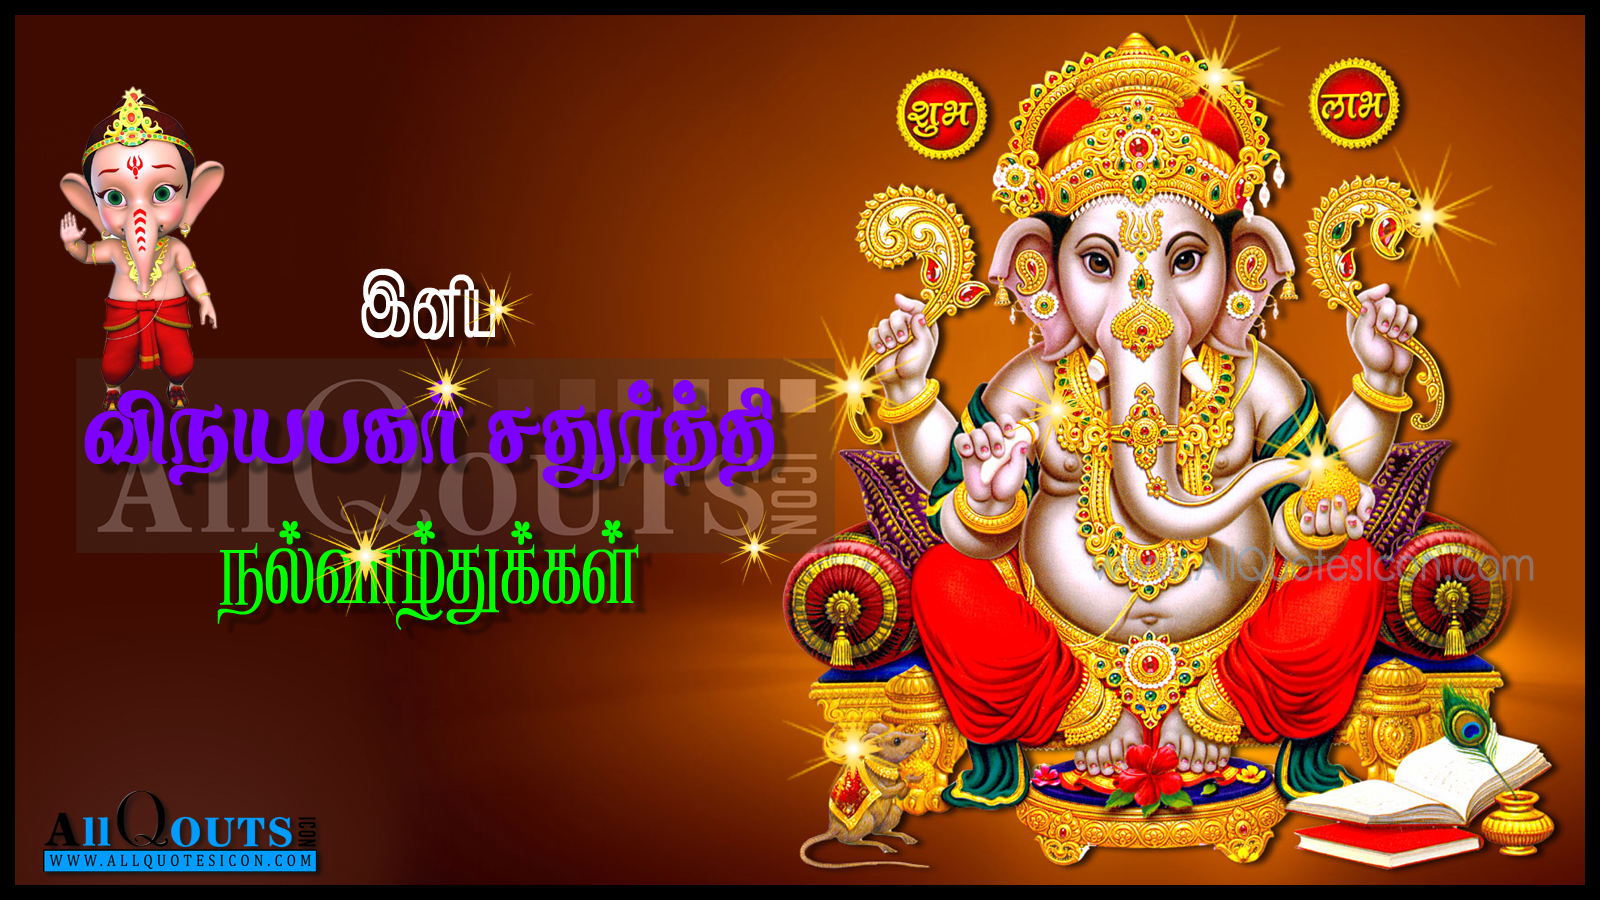 Happy Vinayaka Chavithi Wishes And Pictures With Nice Quotations And